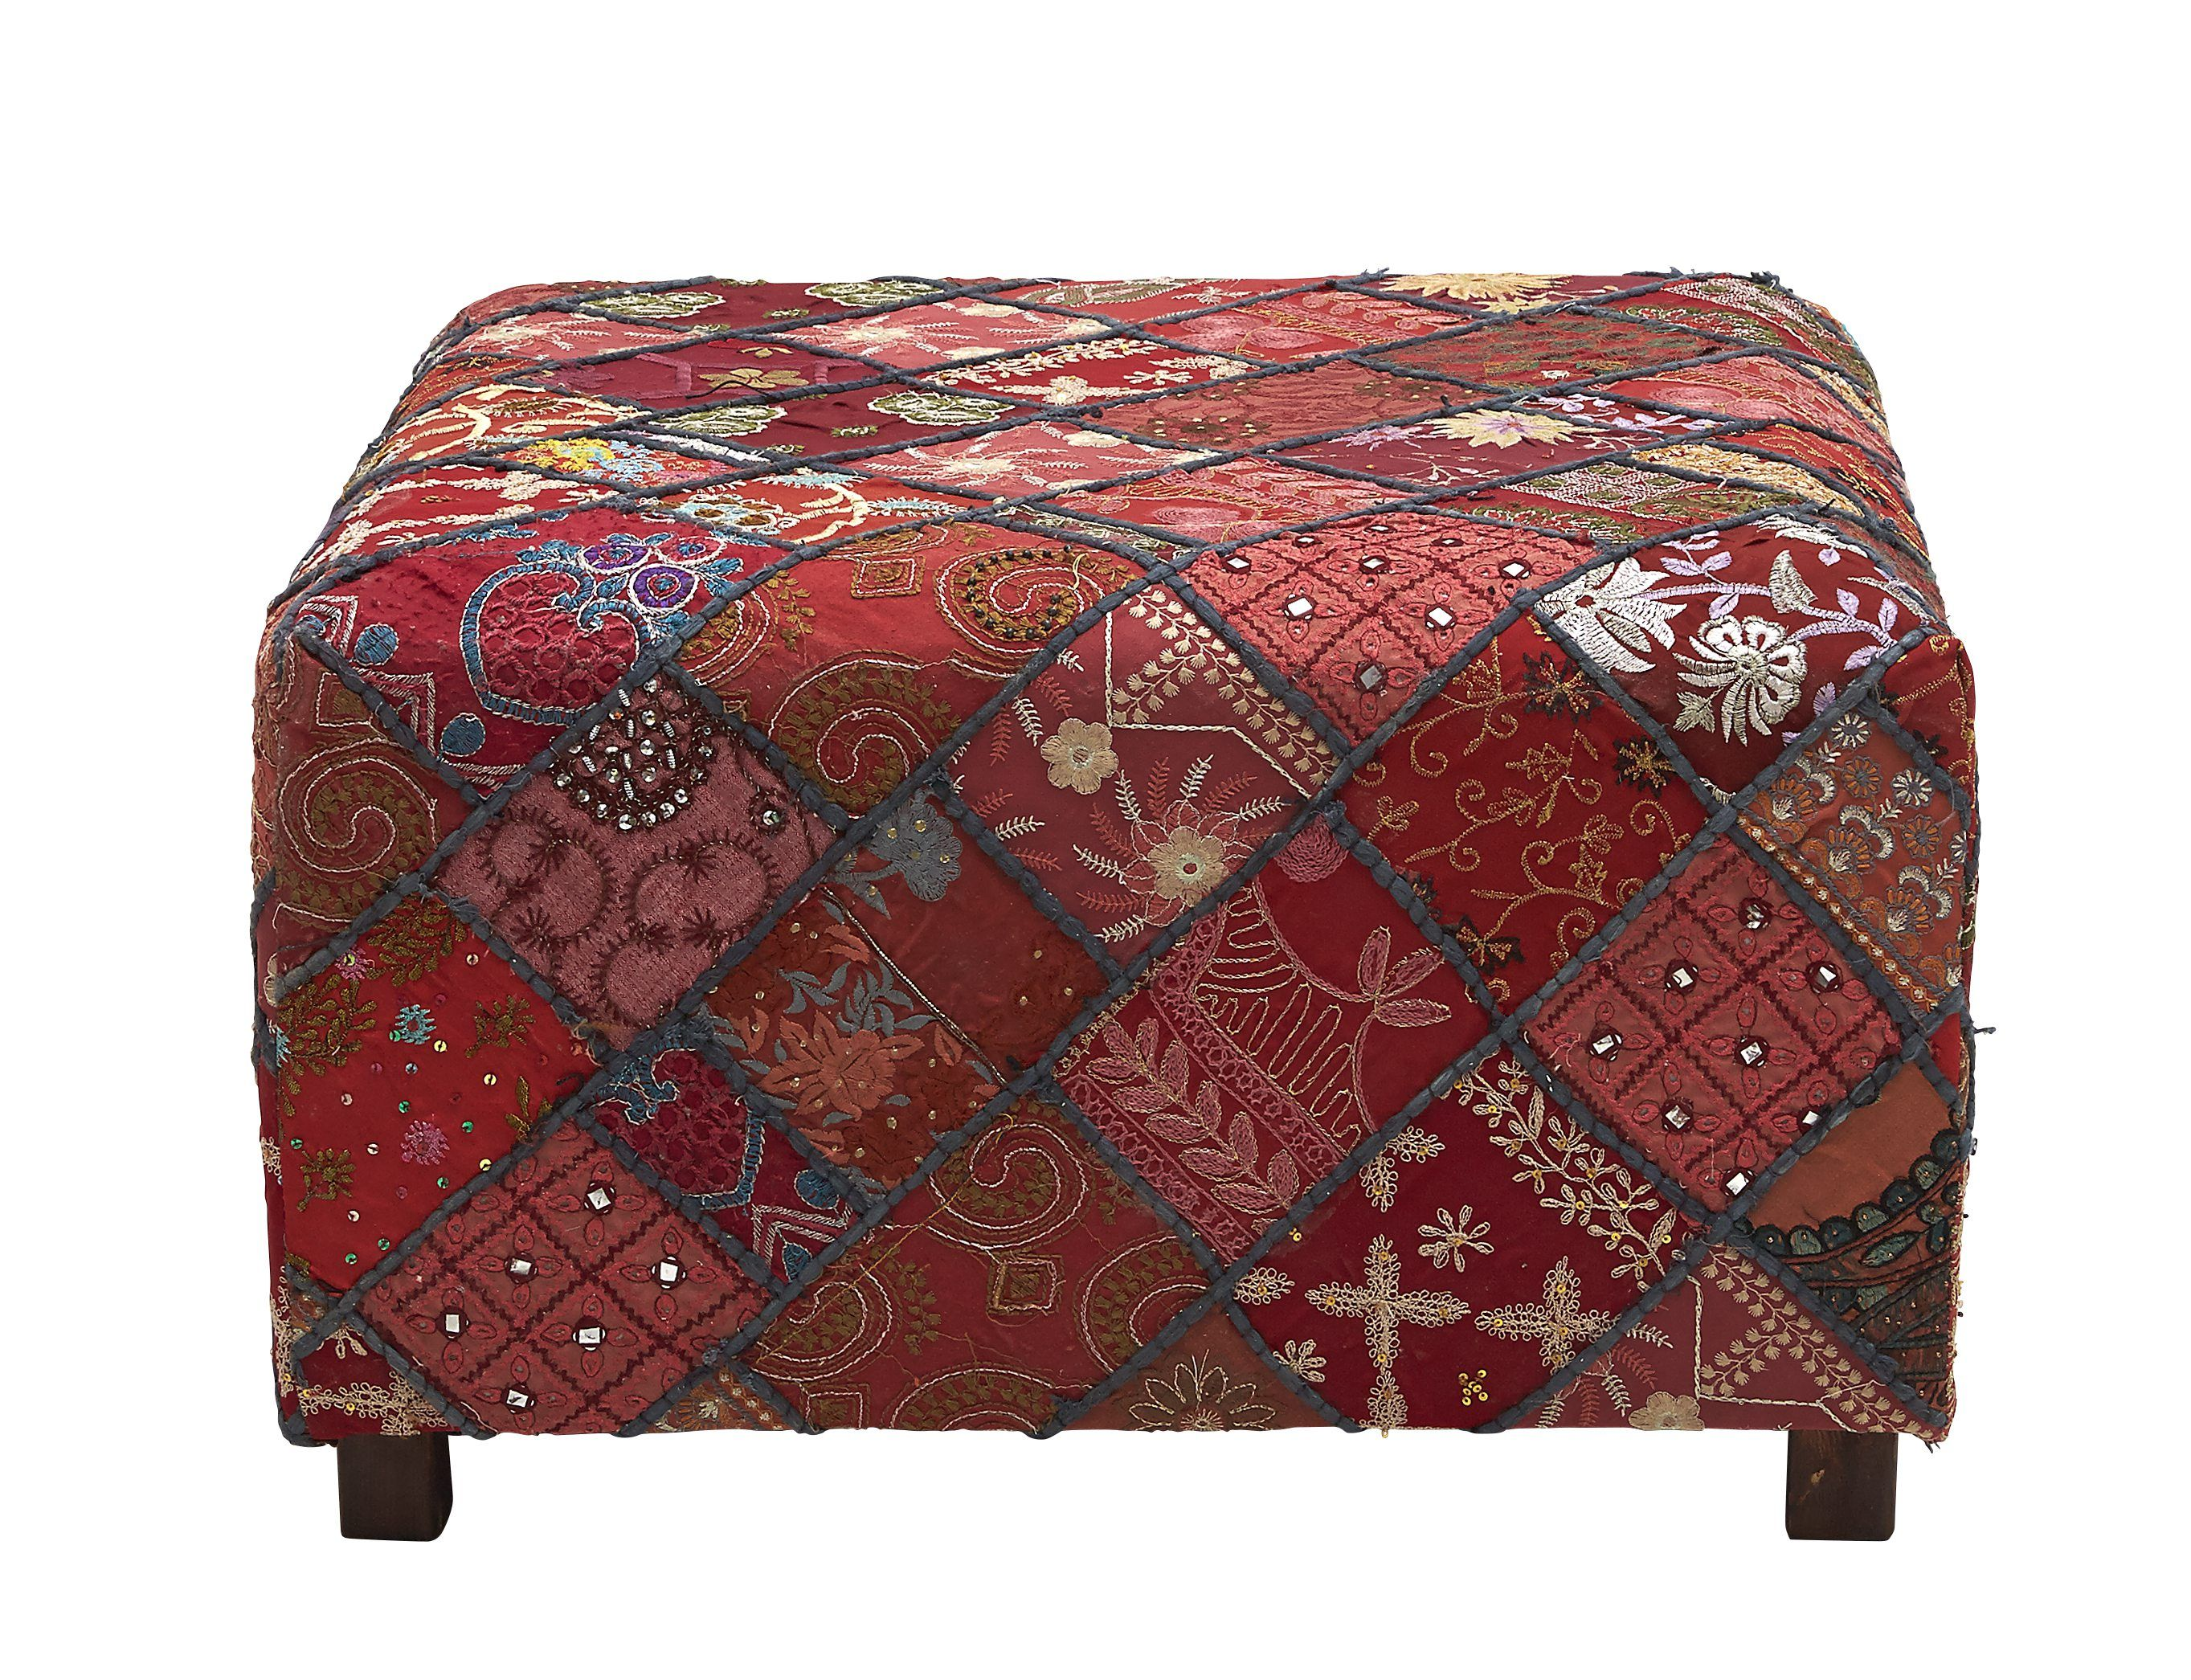 with cushion blue cotton combination floral furniture velvet also coffee noguchi sofa grey room ottoman large fabric linen living brown and c pattern table rectangular ottomans light